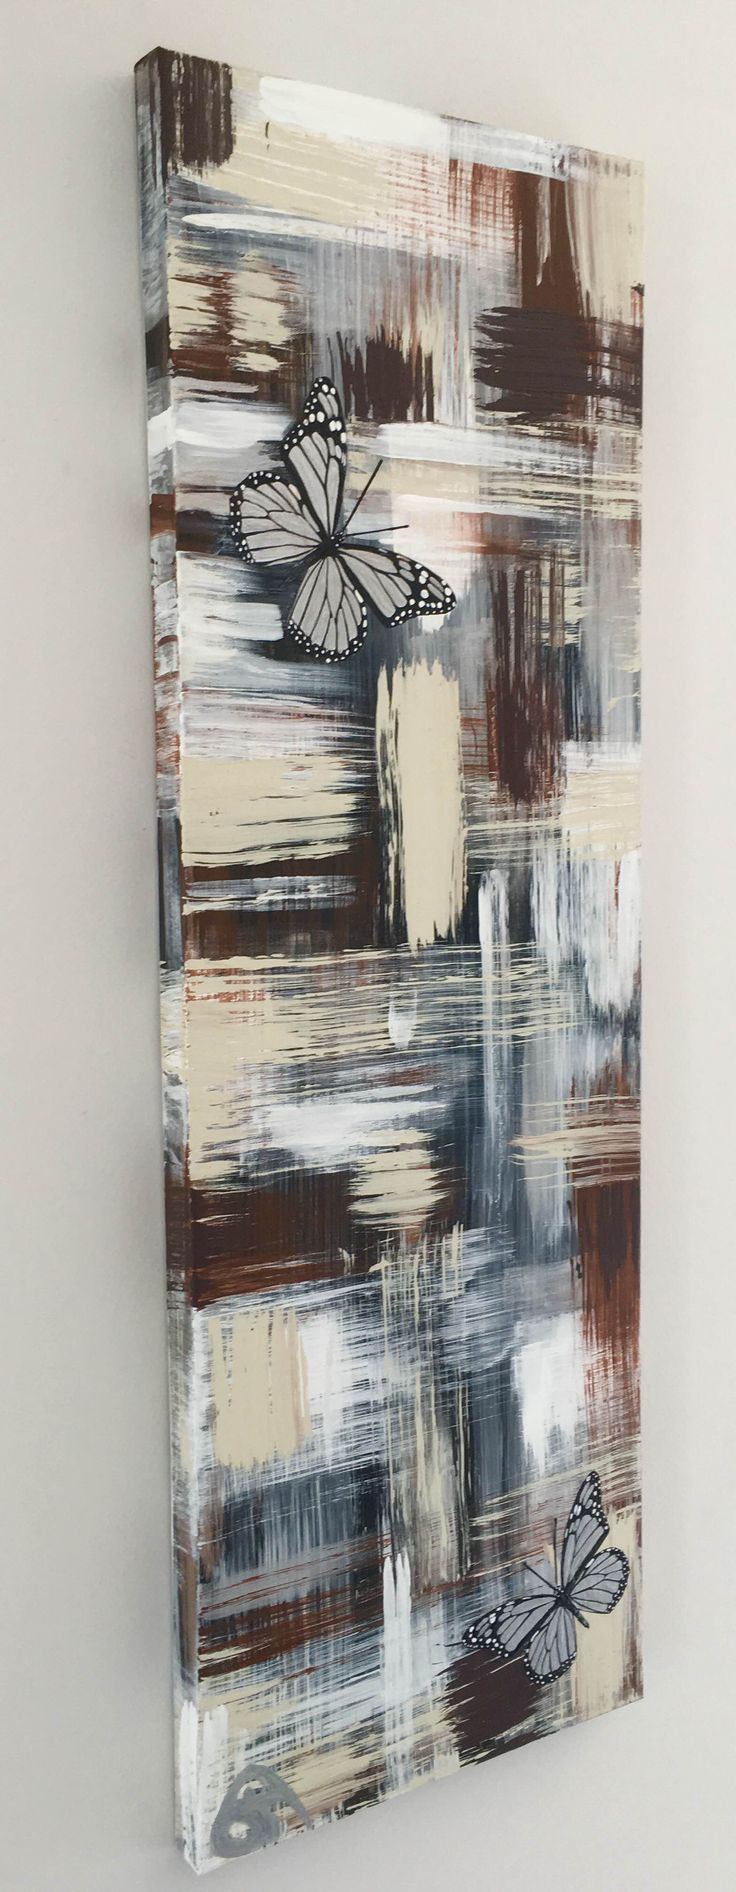 "SOLD""Contemporary Living"" Metallic Sliver Butterflies with Resin Finish ~Like my Facebook Artist Annette Spanski PAGE or check out all my art on INSTAGRAM @asartstylist"